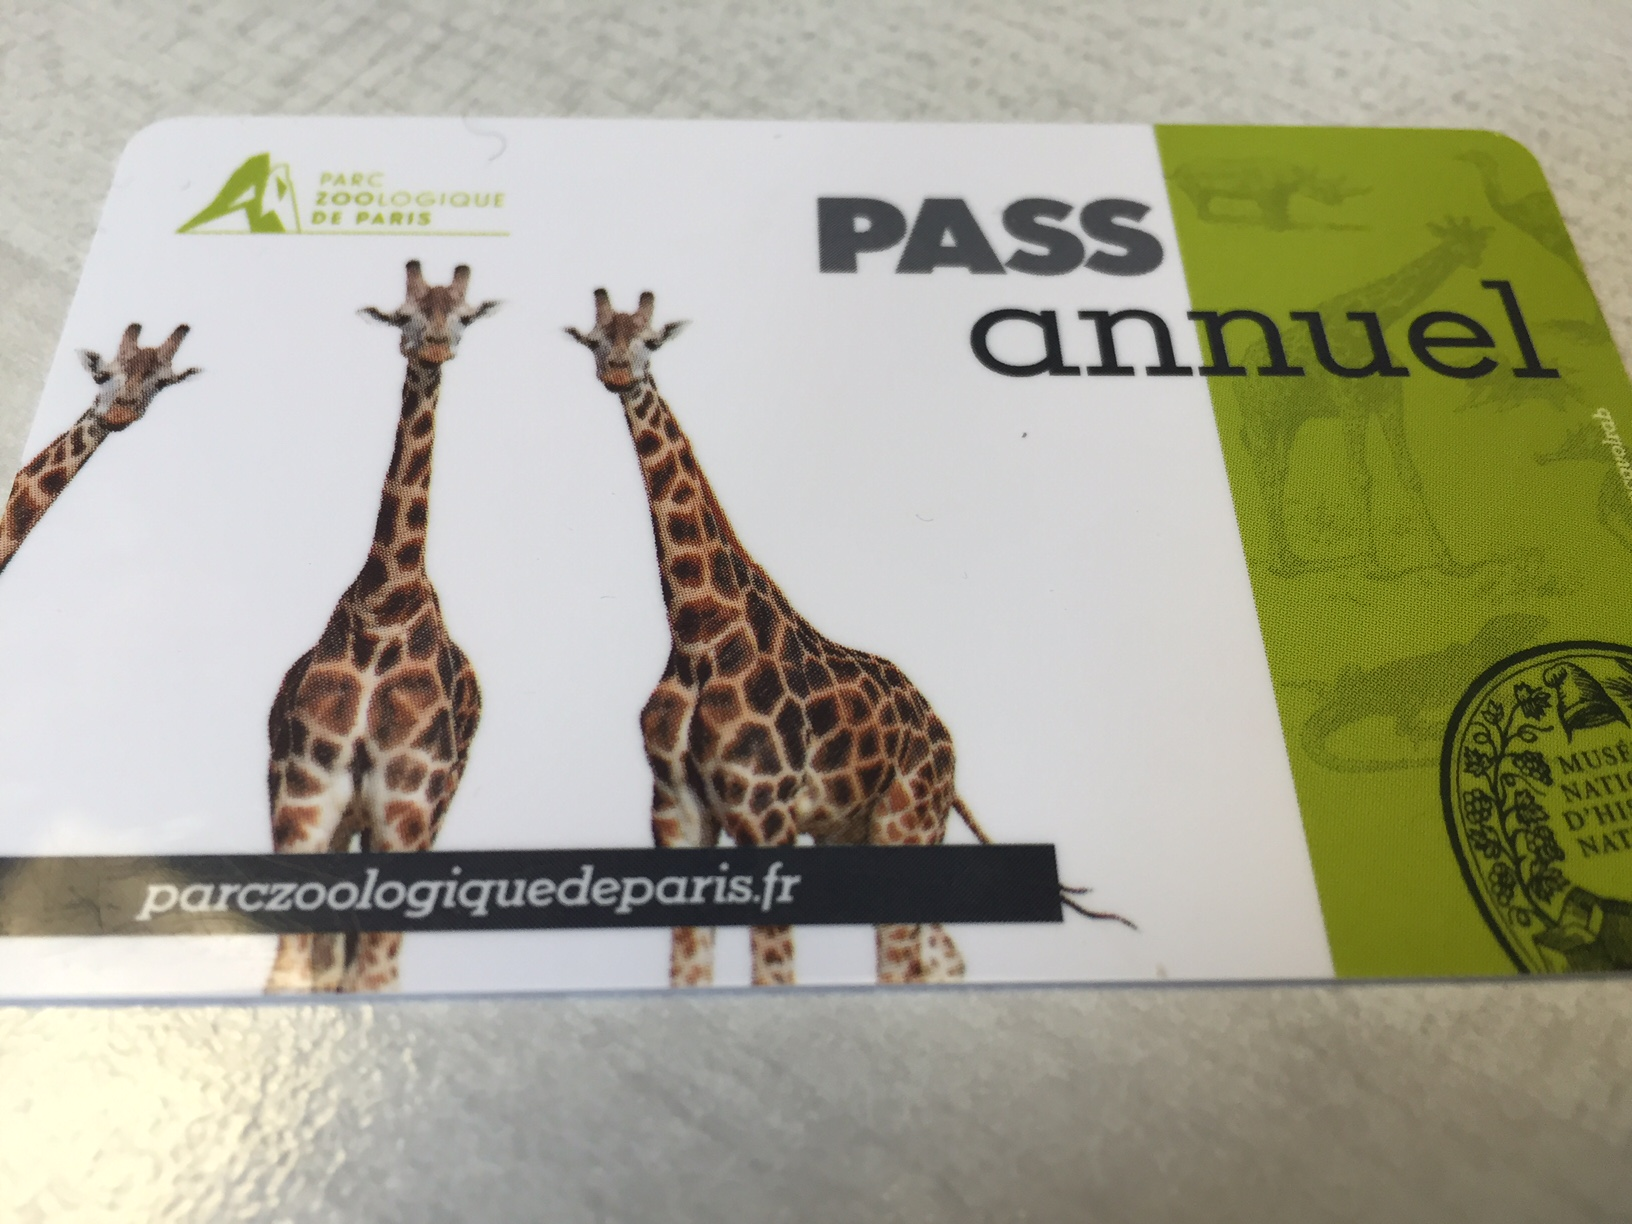 zoo pass annuel paris